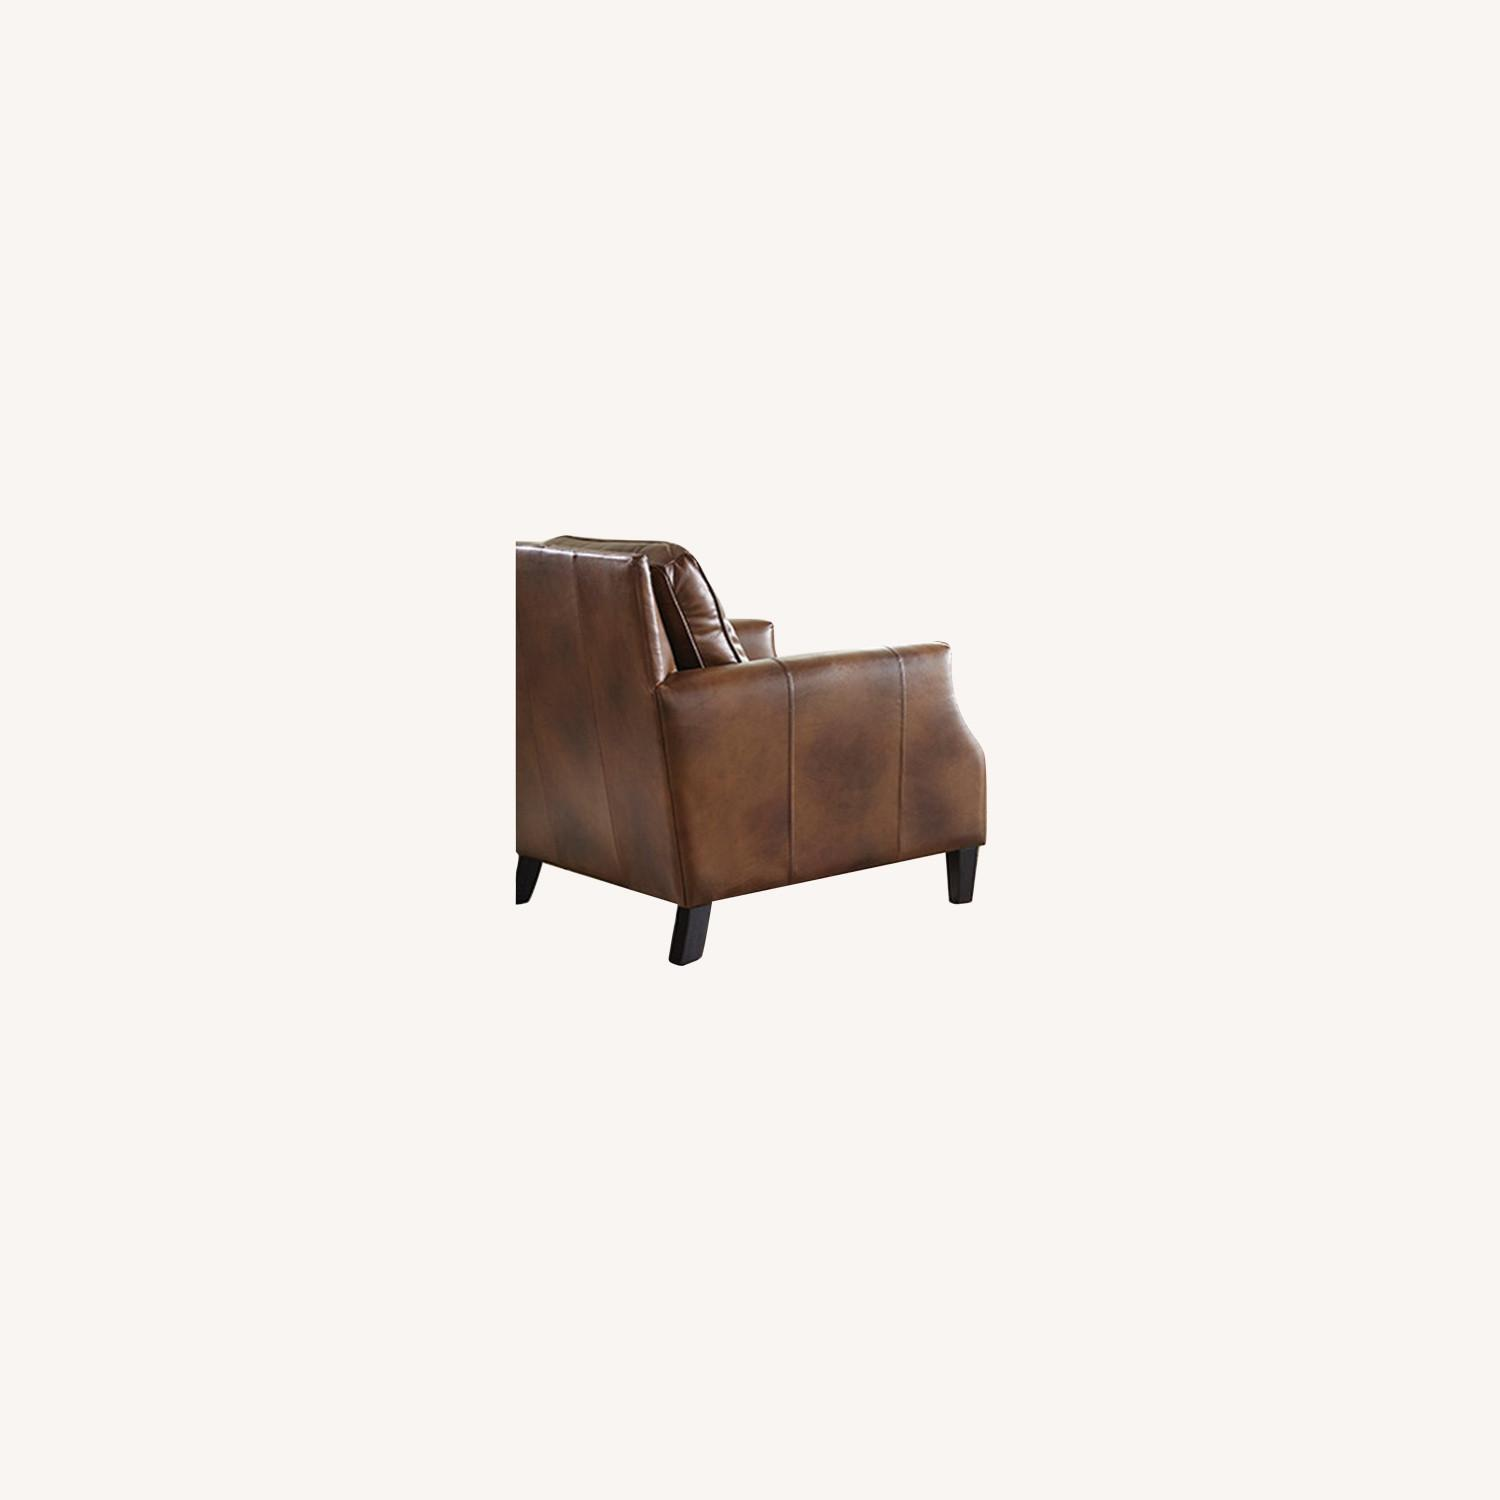 Chair In Brown Sugar Leather Upholstery - image-3